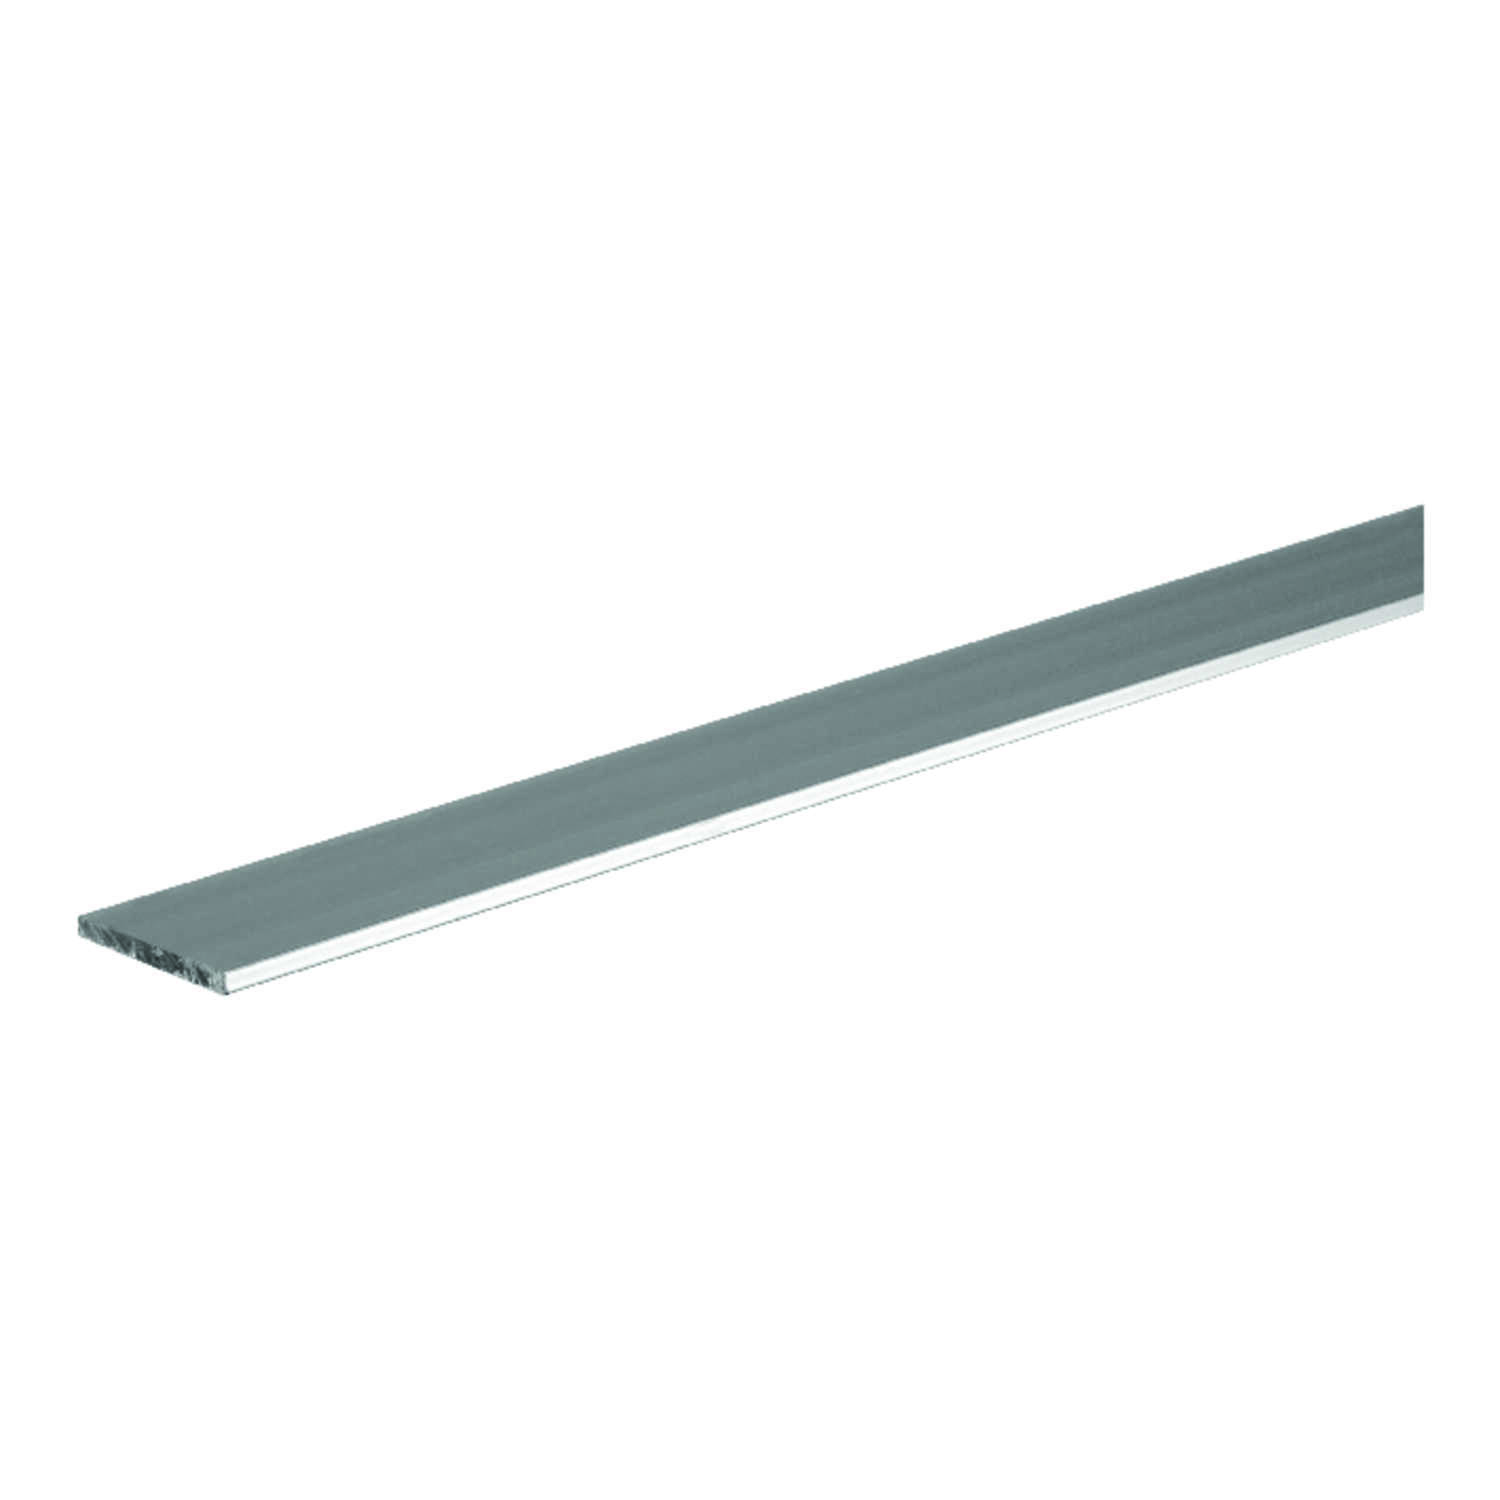 Boltmaster  0.125 in.  x 0.75 in. W x 4 ft. L Weldable Aluminum Flat Bar  1 pk